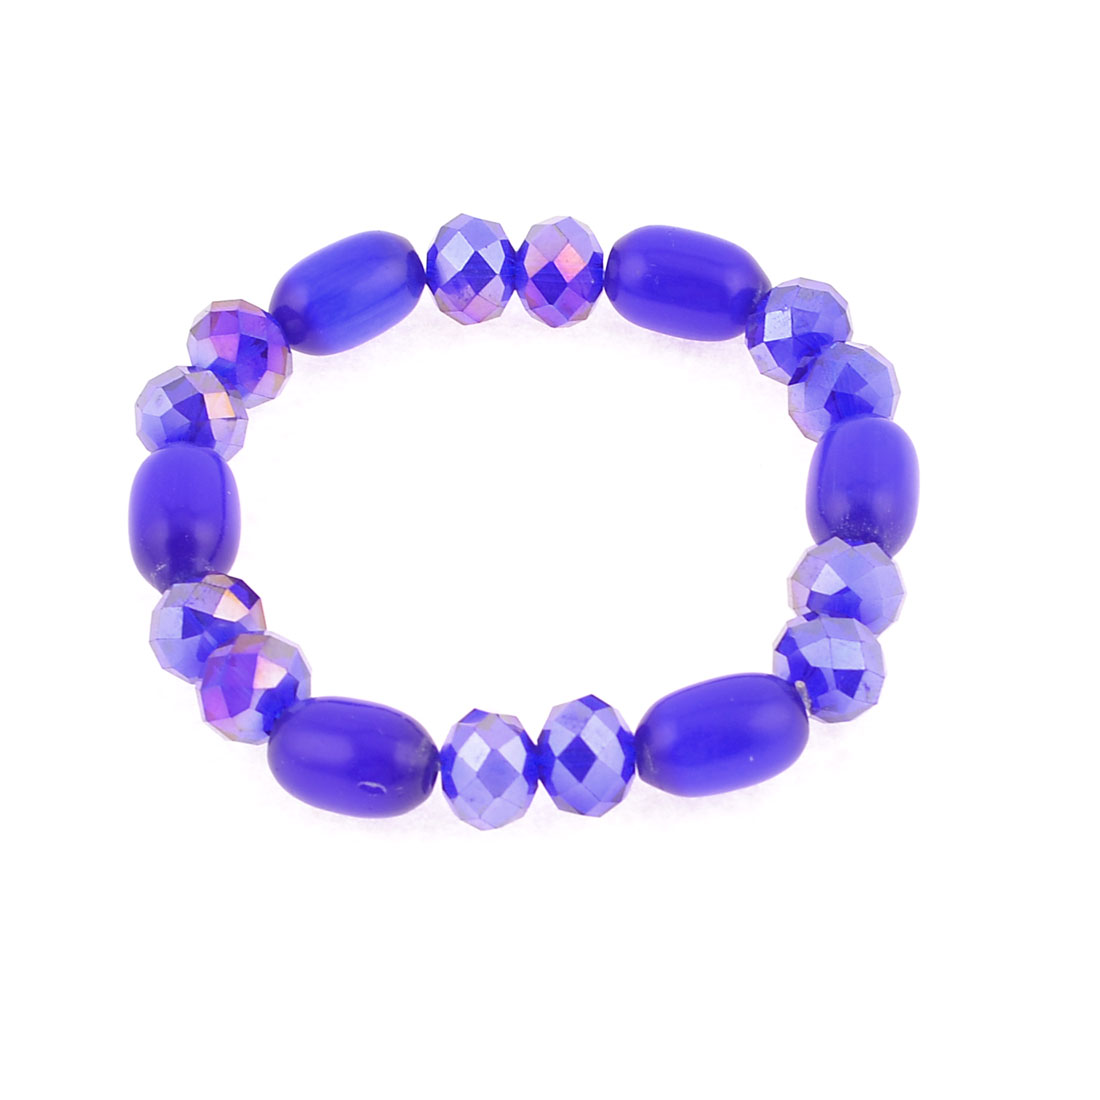 Dark Blue Glitter Faceted Beads Stretchy Bracelets Bangle for Woman